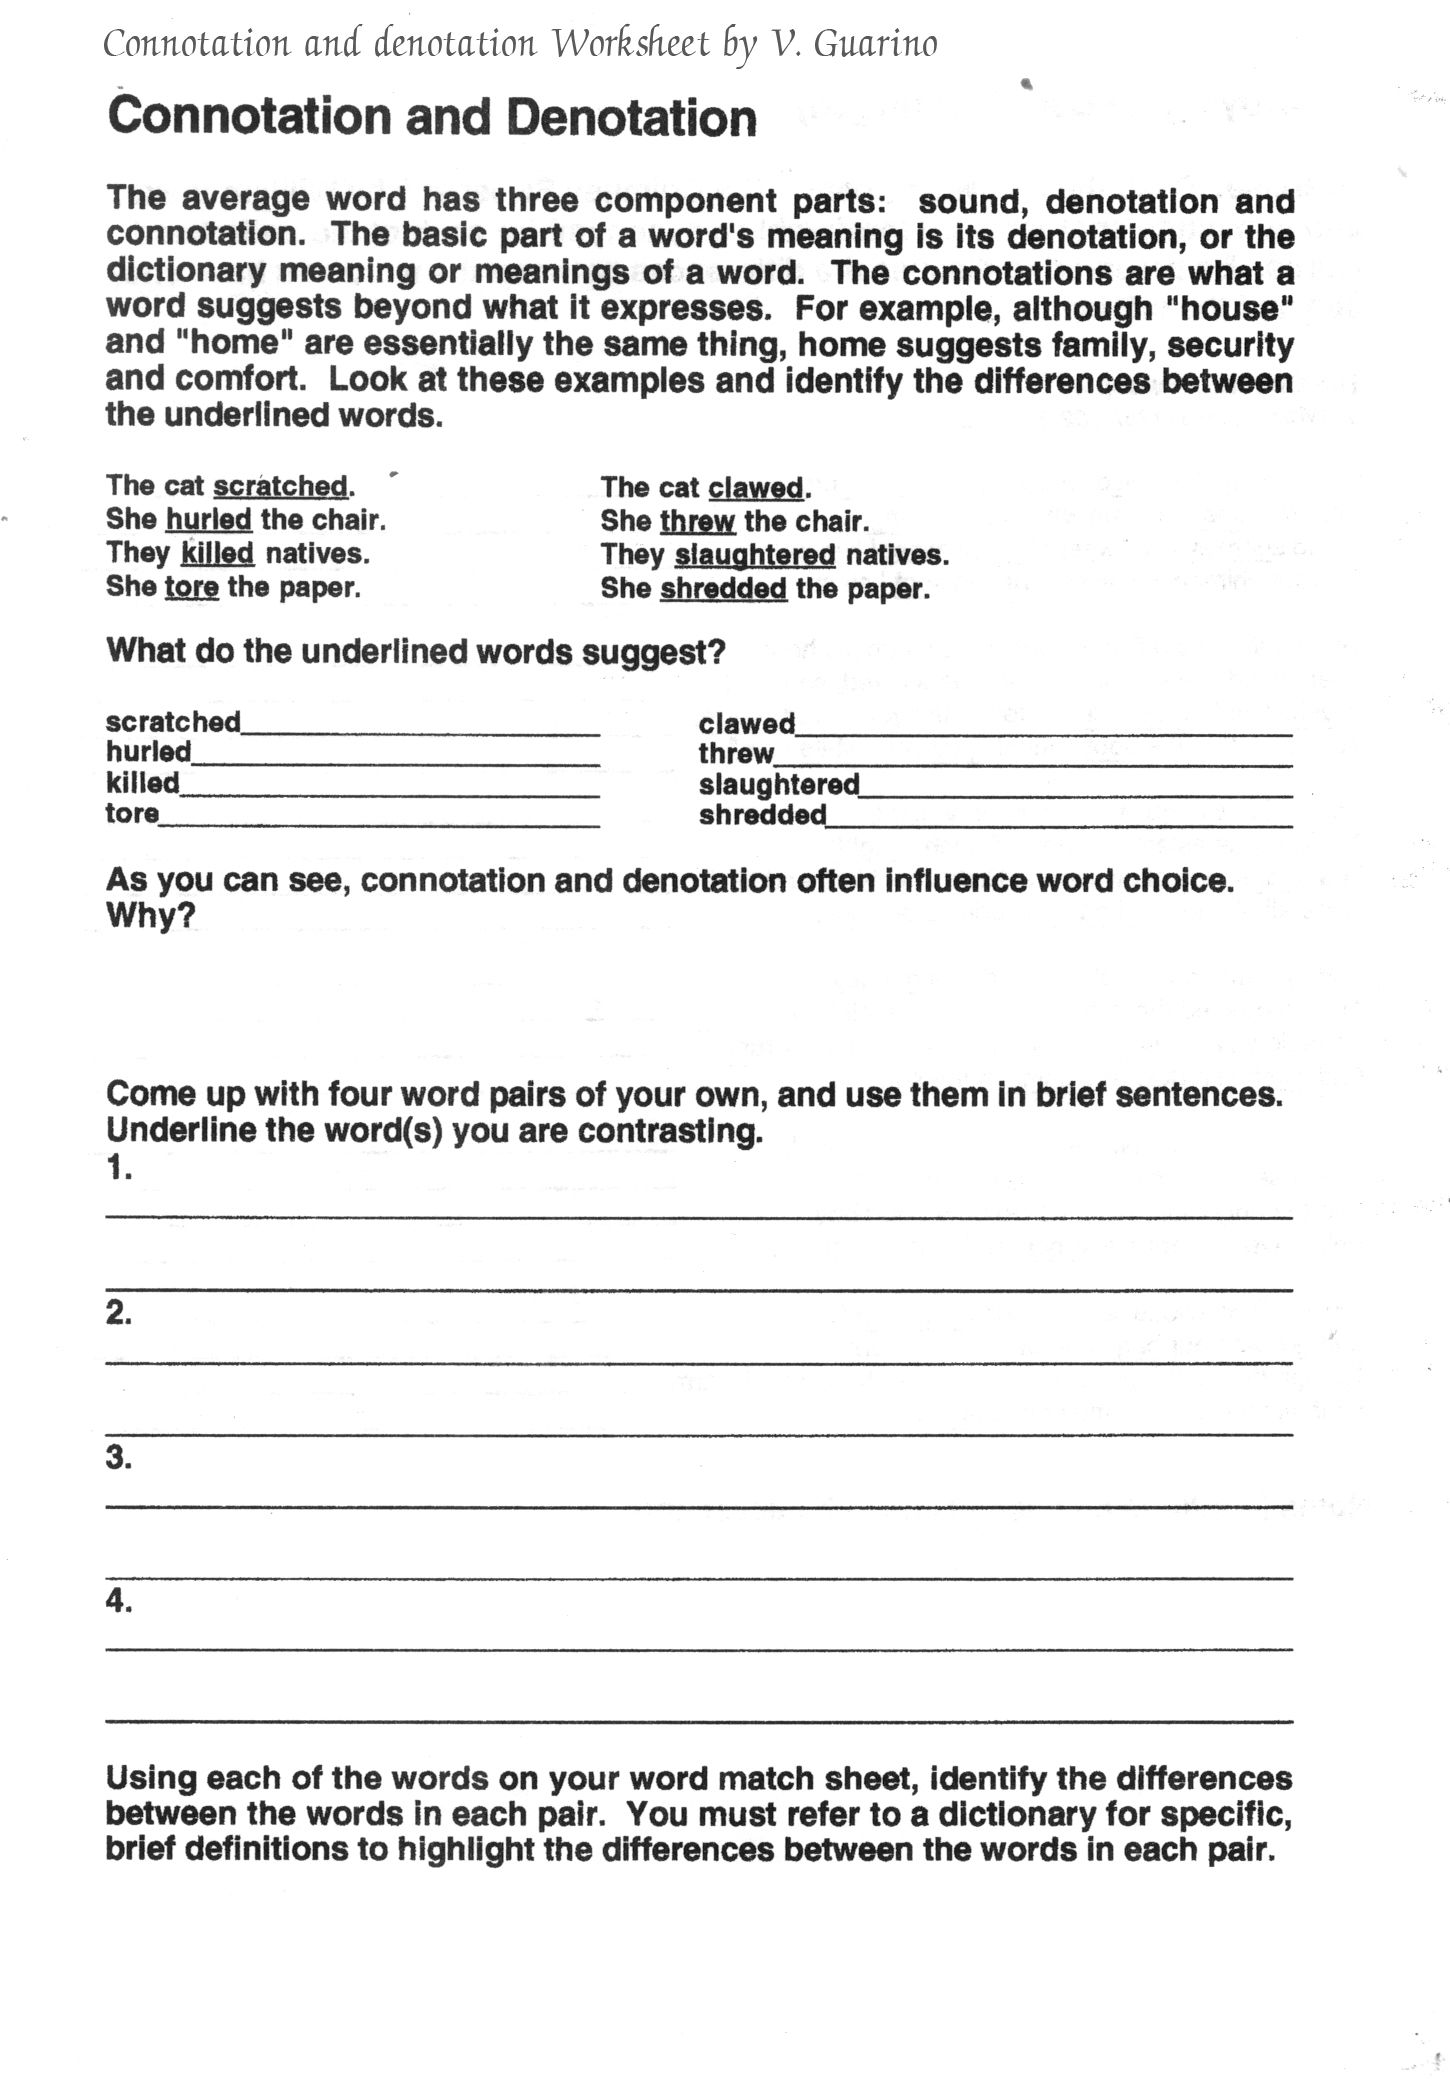 Connotation And Denotation Worksheets For Middle School – Denotation and Connotation Worksheets